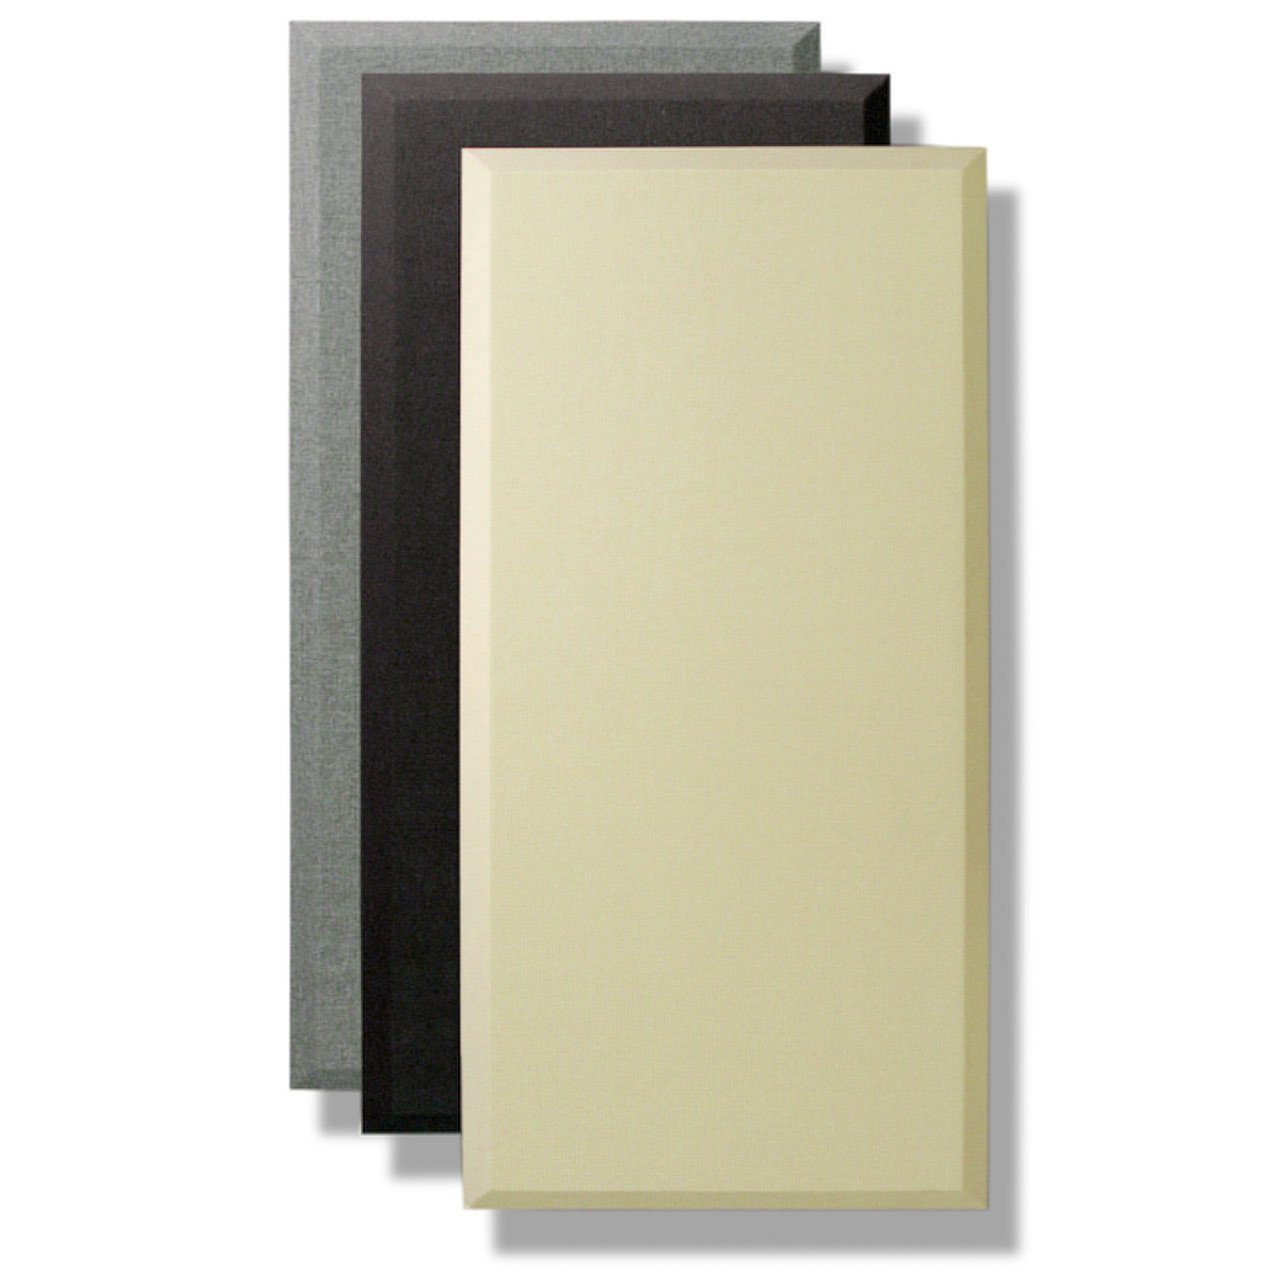 Acoustic Panels - Primacoustic Broadway Broadband Absorbers 24x48x2